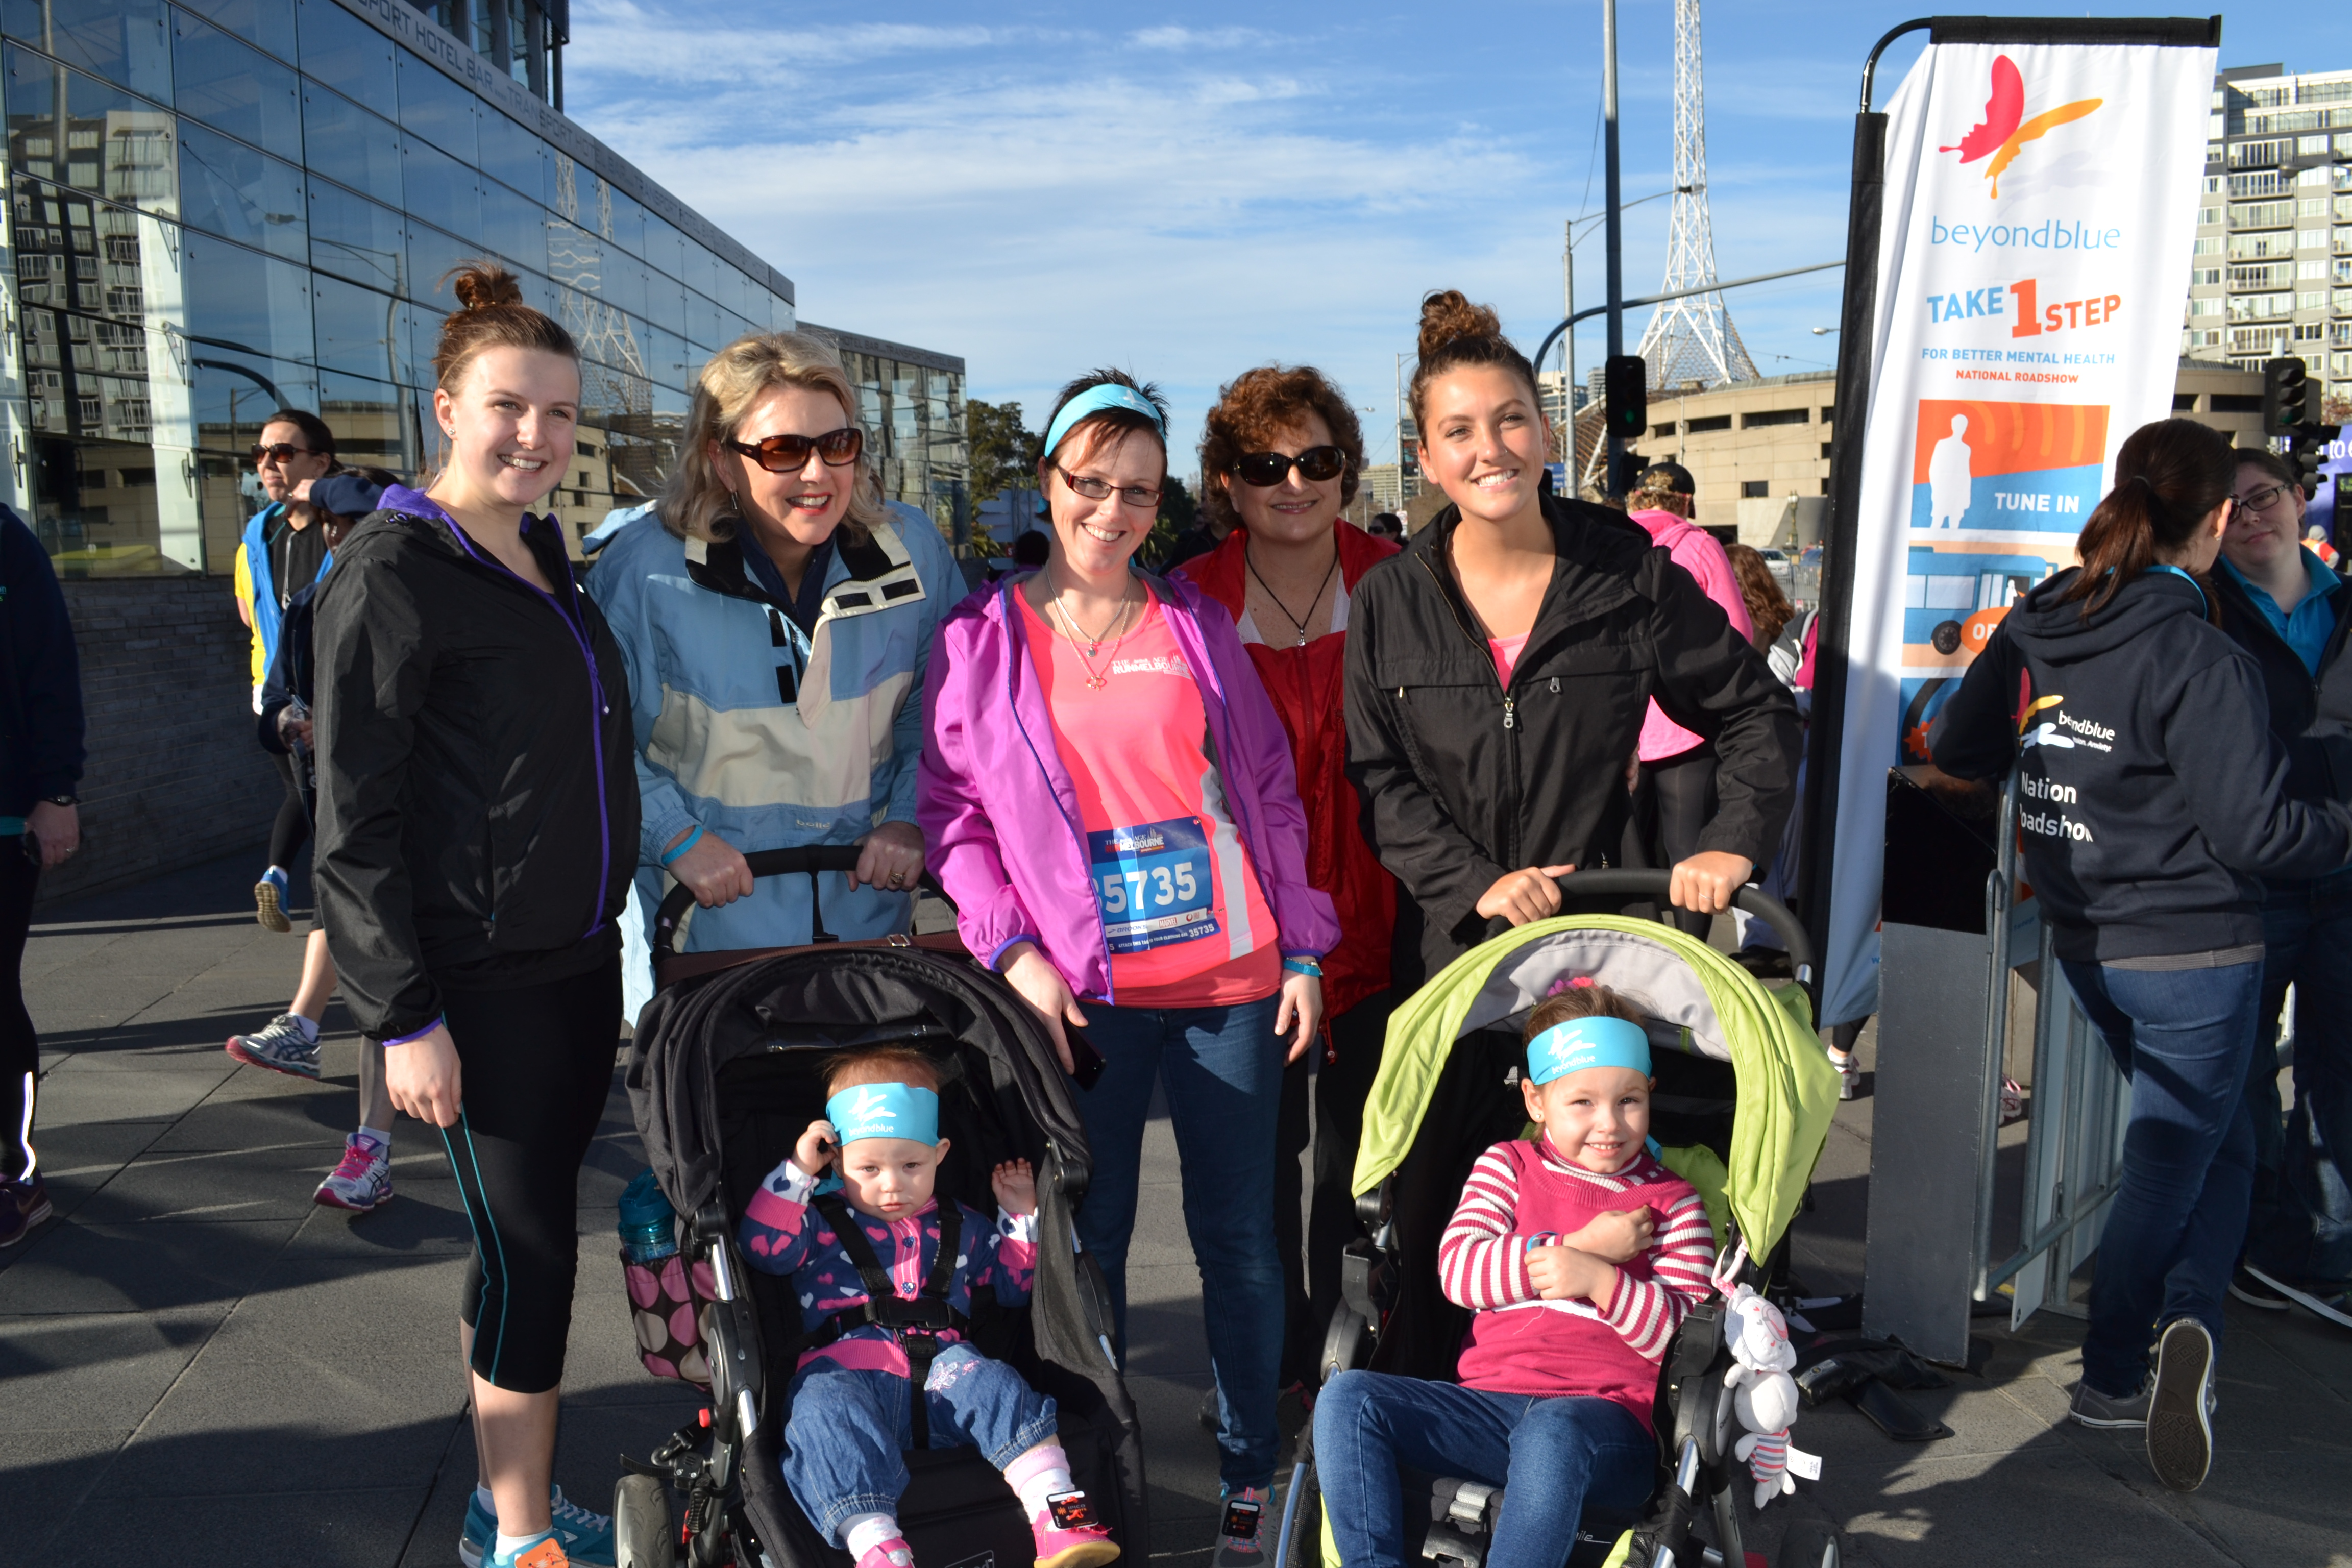 Prams were helping get our youngest supporters involved in Run Melbourne!